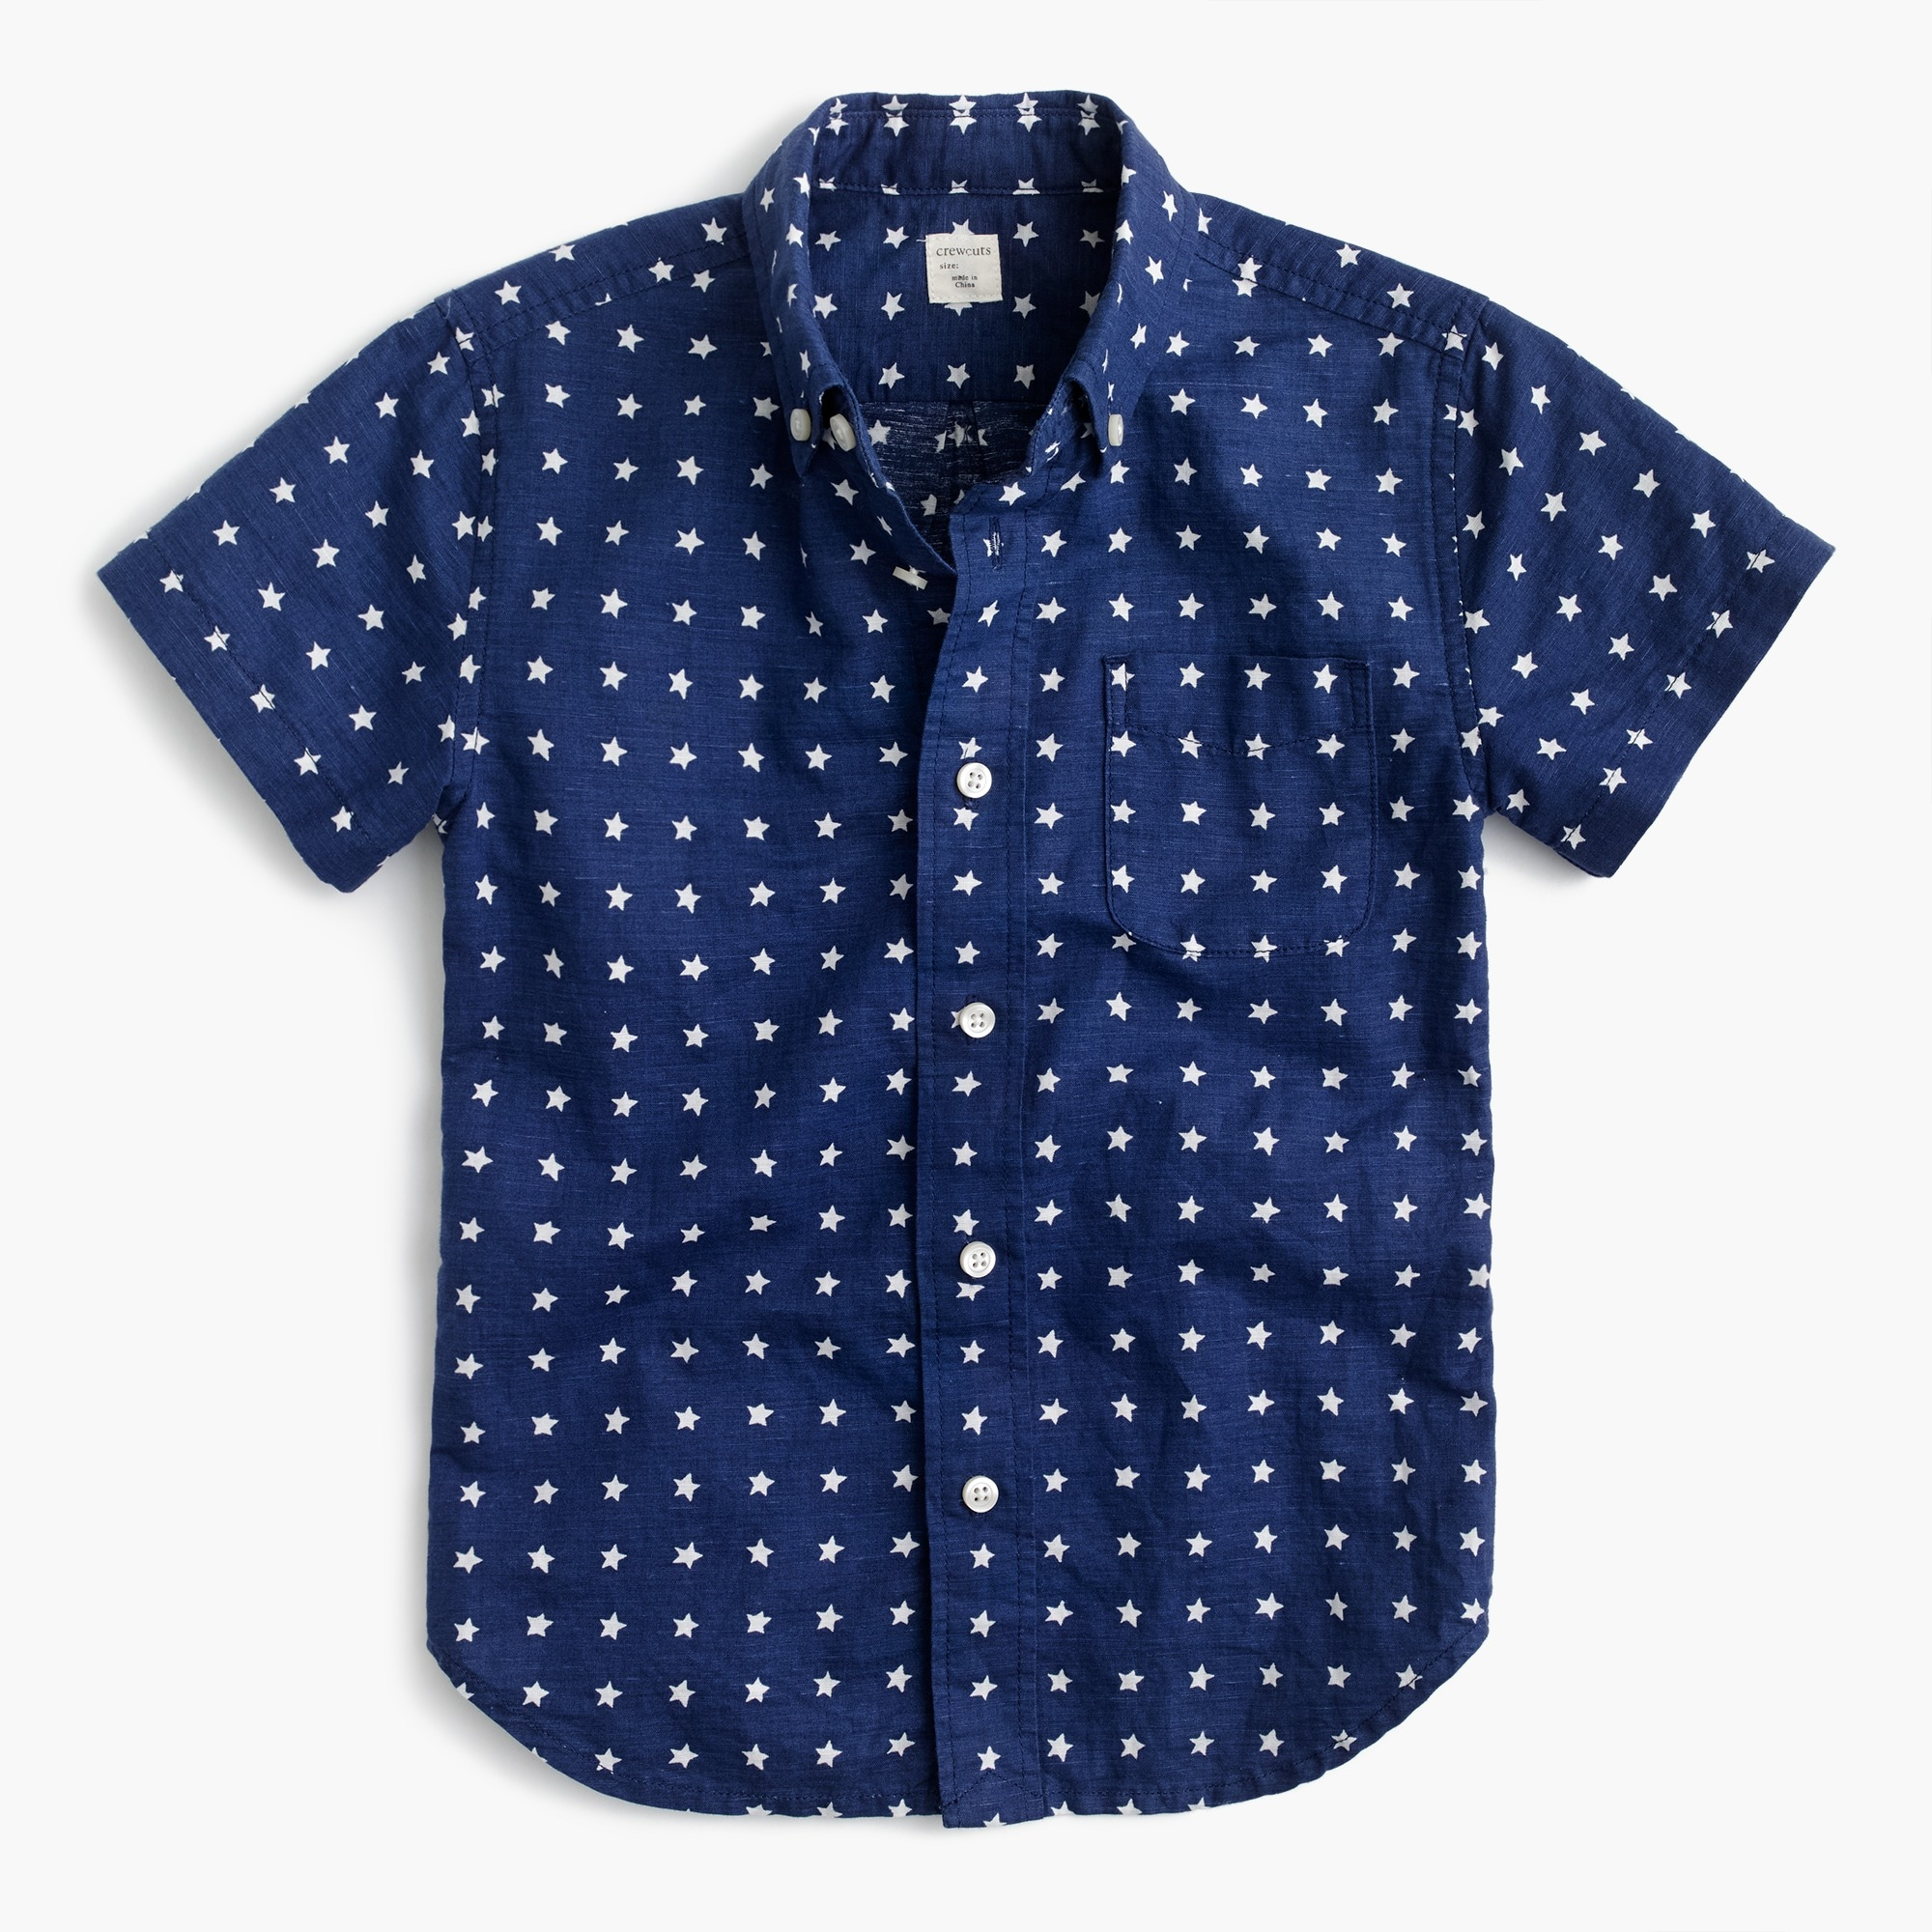 Kids' short-sleeve linen-cotton shirt in star print